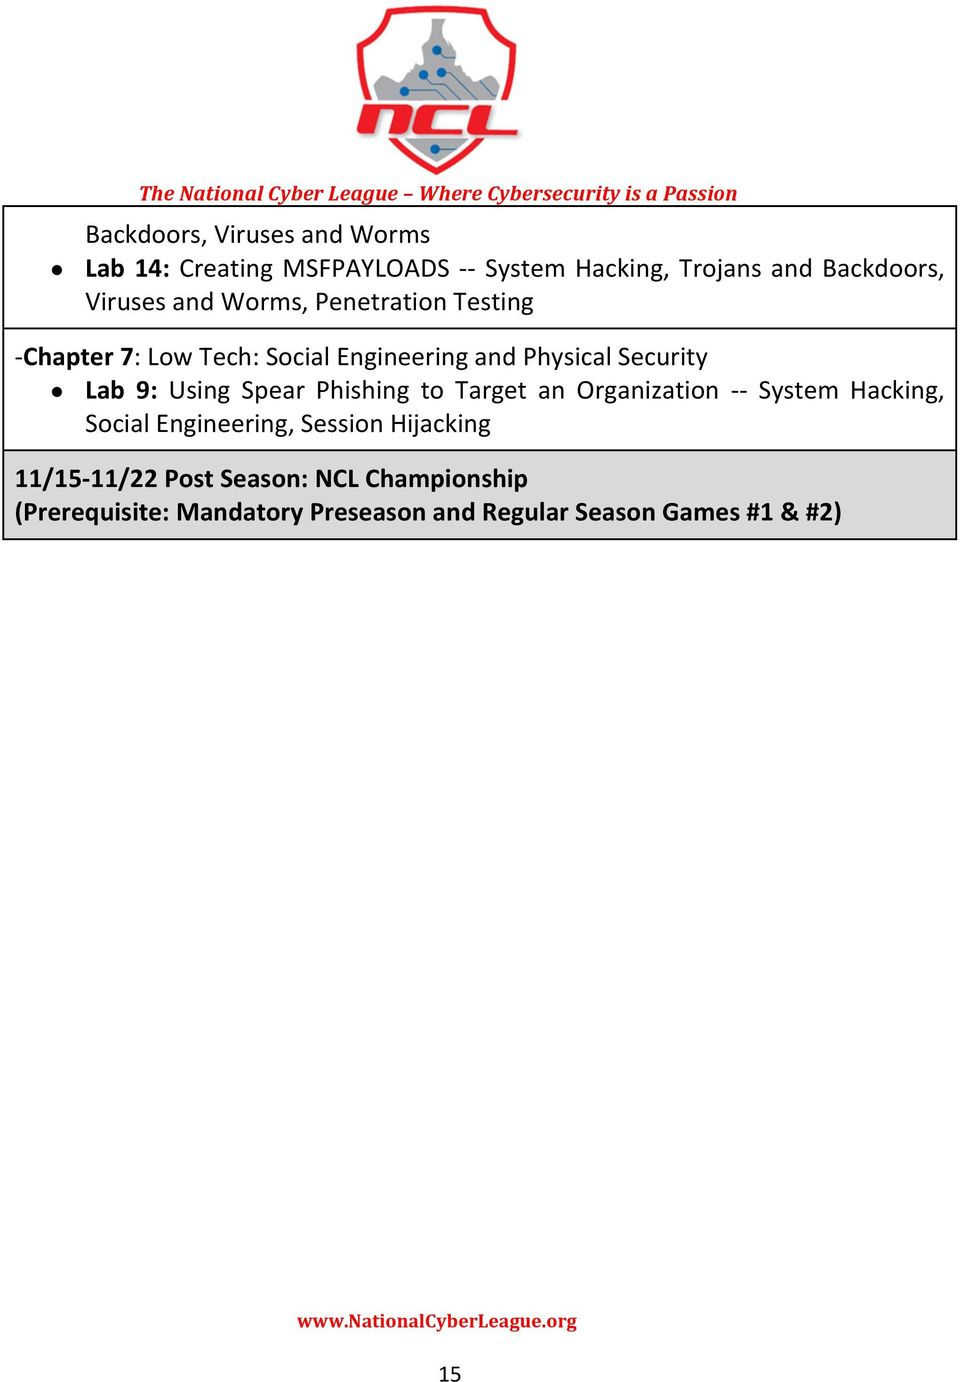 9: Using Spear Phishing to Target an Organization - - System Hacking, Social Engineering, Session Hijacking